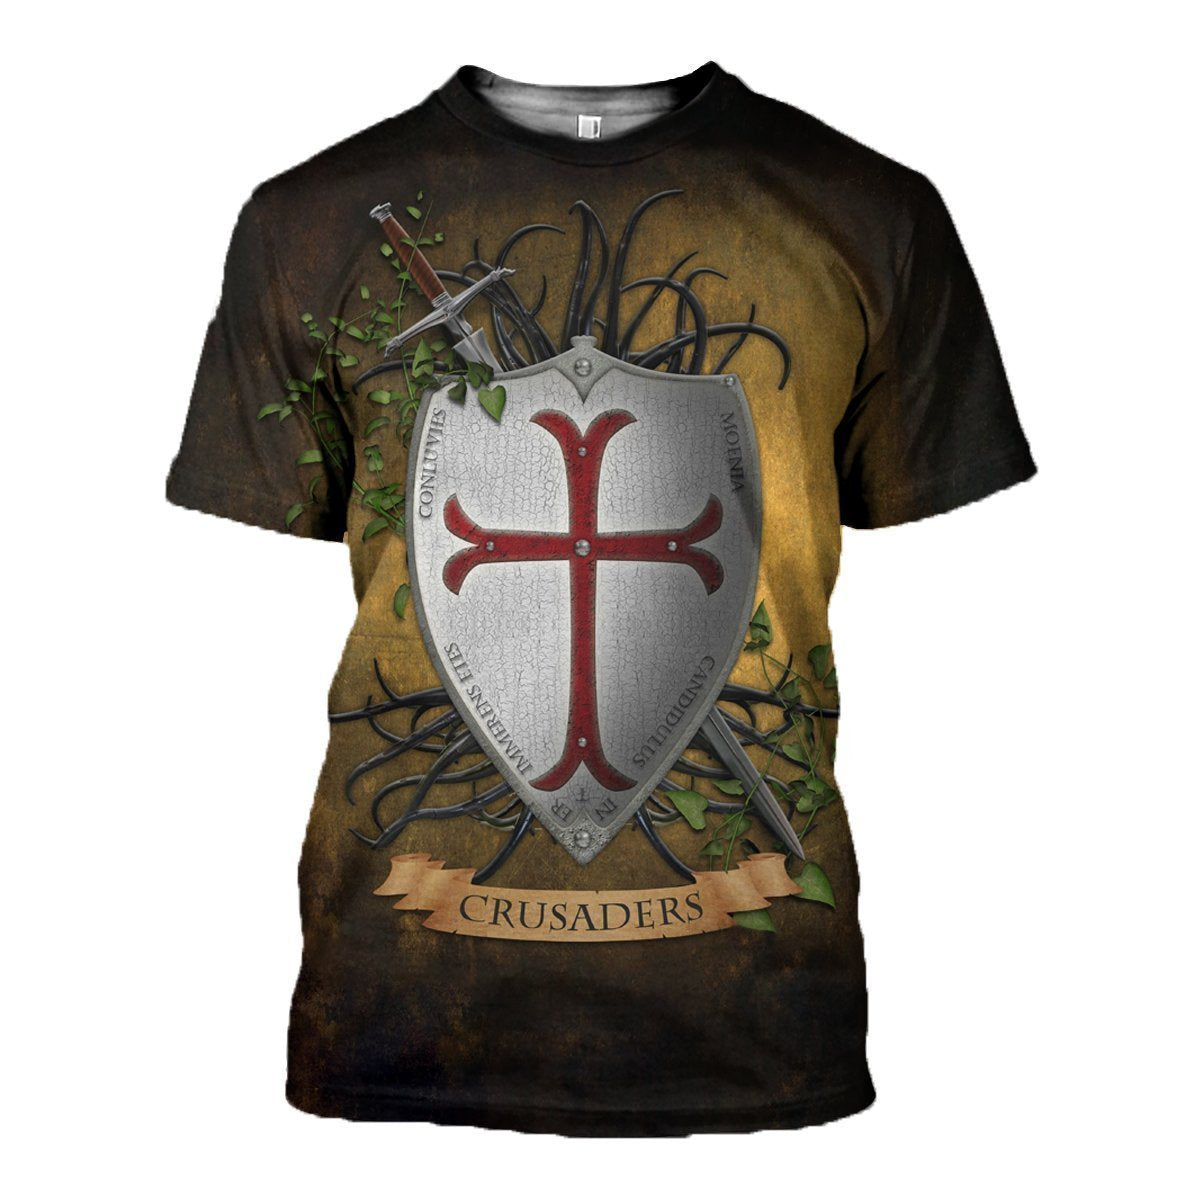 3D All Over Printed Knights Templar Shirts and Shorts - Amaze Style™-Knights Templar